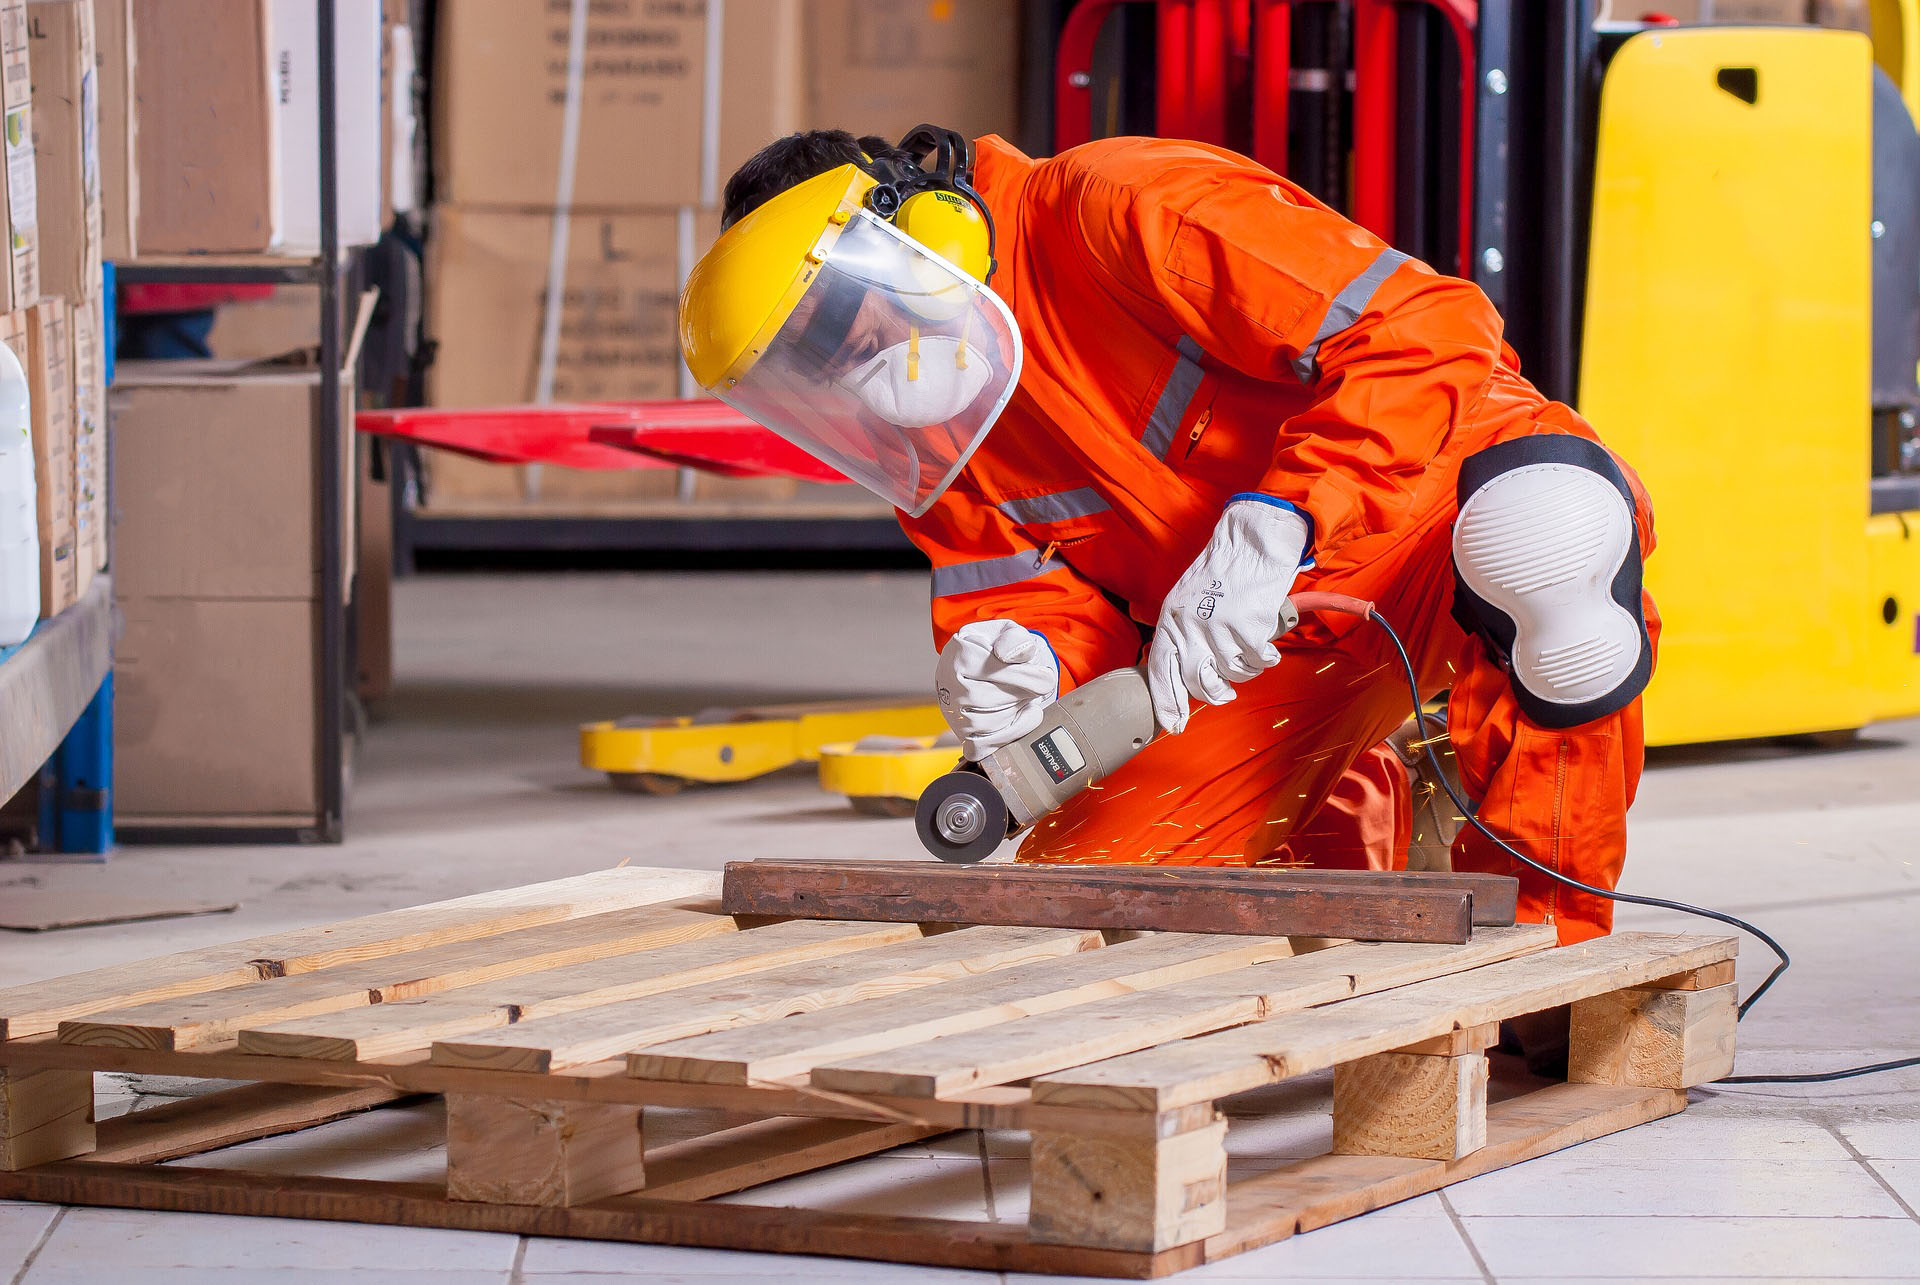 Creating a safety culture: Focus on more than just recording zero incidents